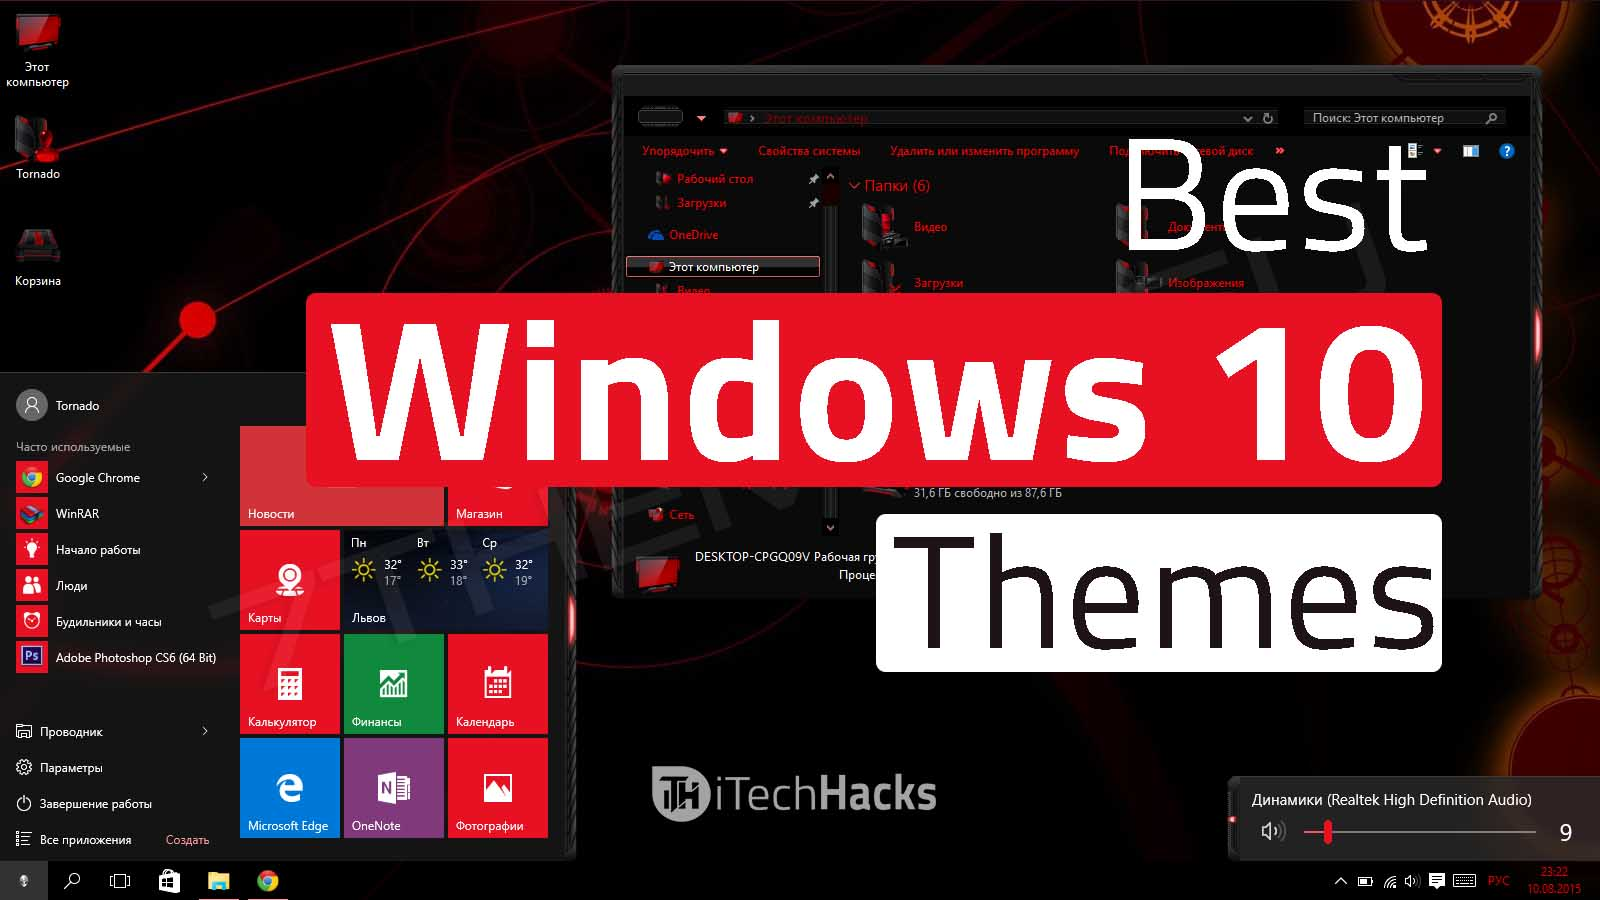 Best 20 Latest Windows 10 Skins And Themes Pack 2020 Free